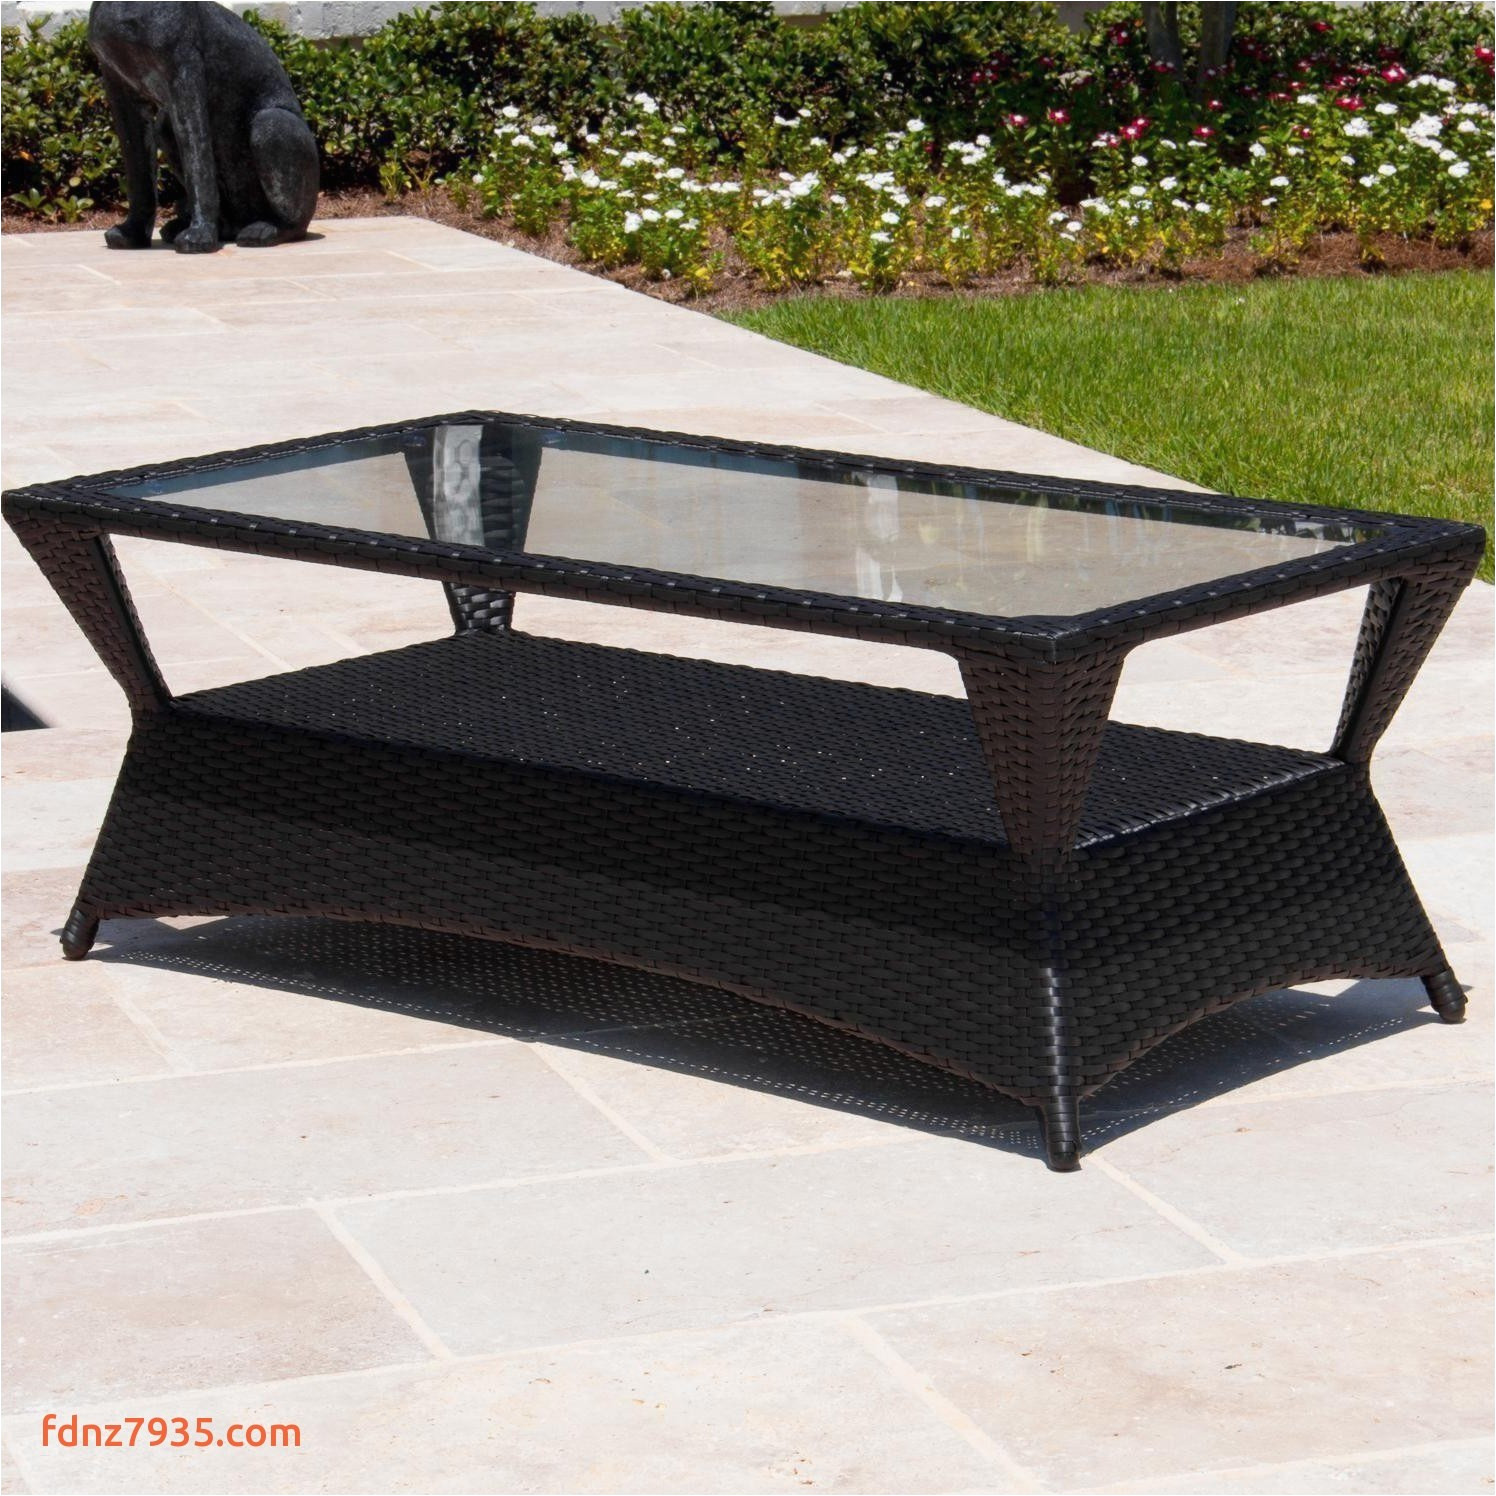 patio table covers incredible patio table covers inspirational wicker outdoor sofa 0d patio chairs